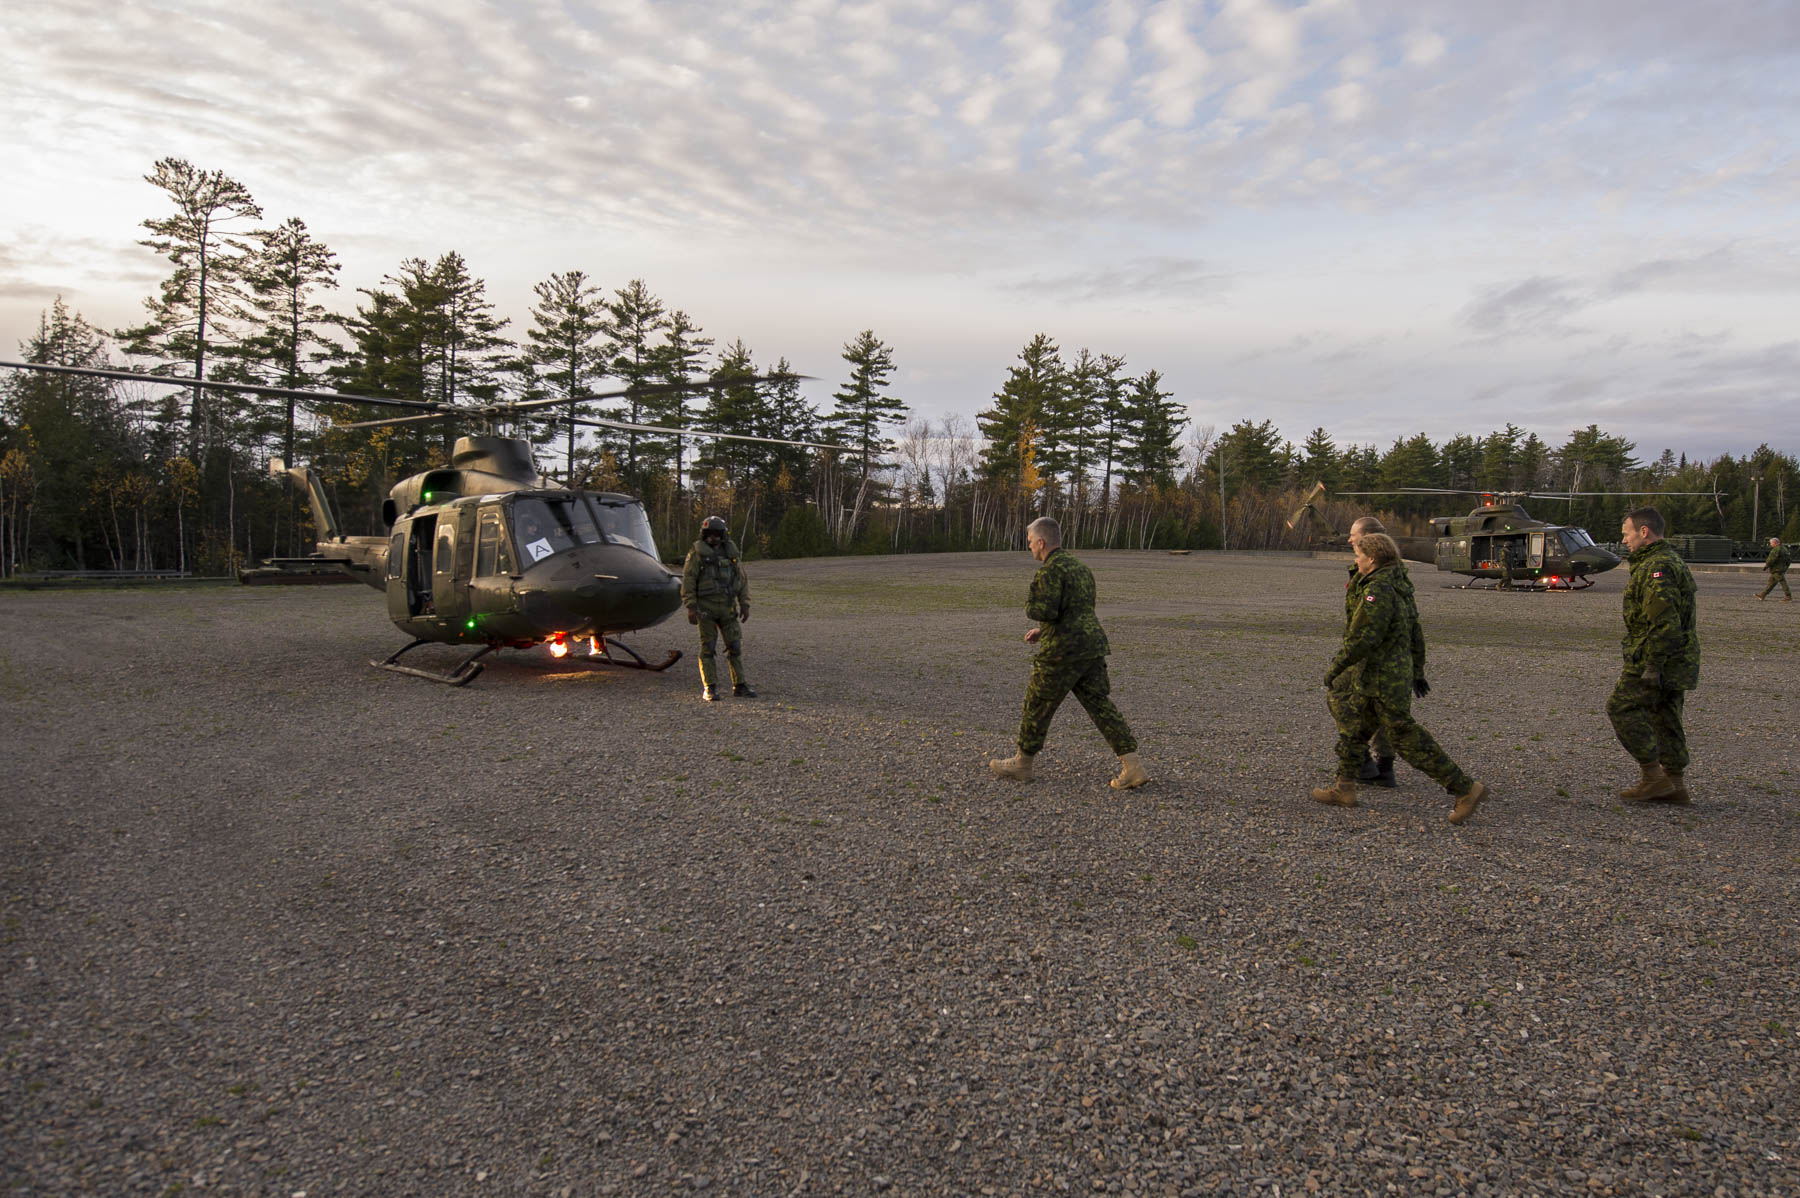 On the base, Her Excellency visited the 403 Helicopter Operational Training Squadron and boarded a helicopter.